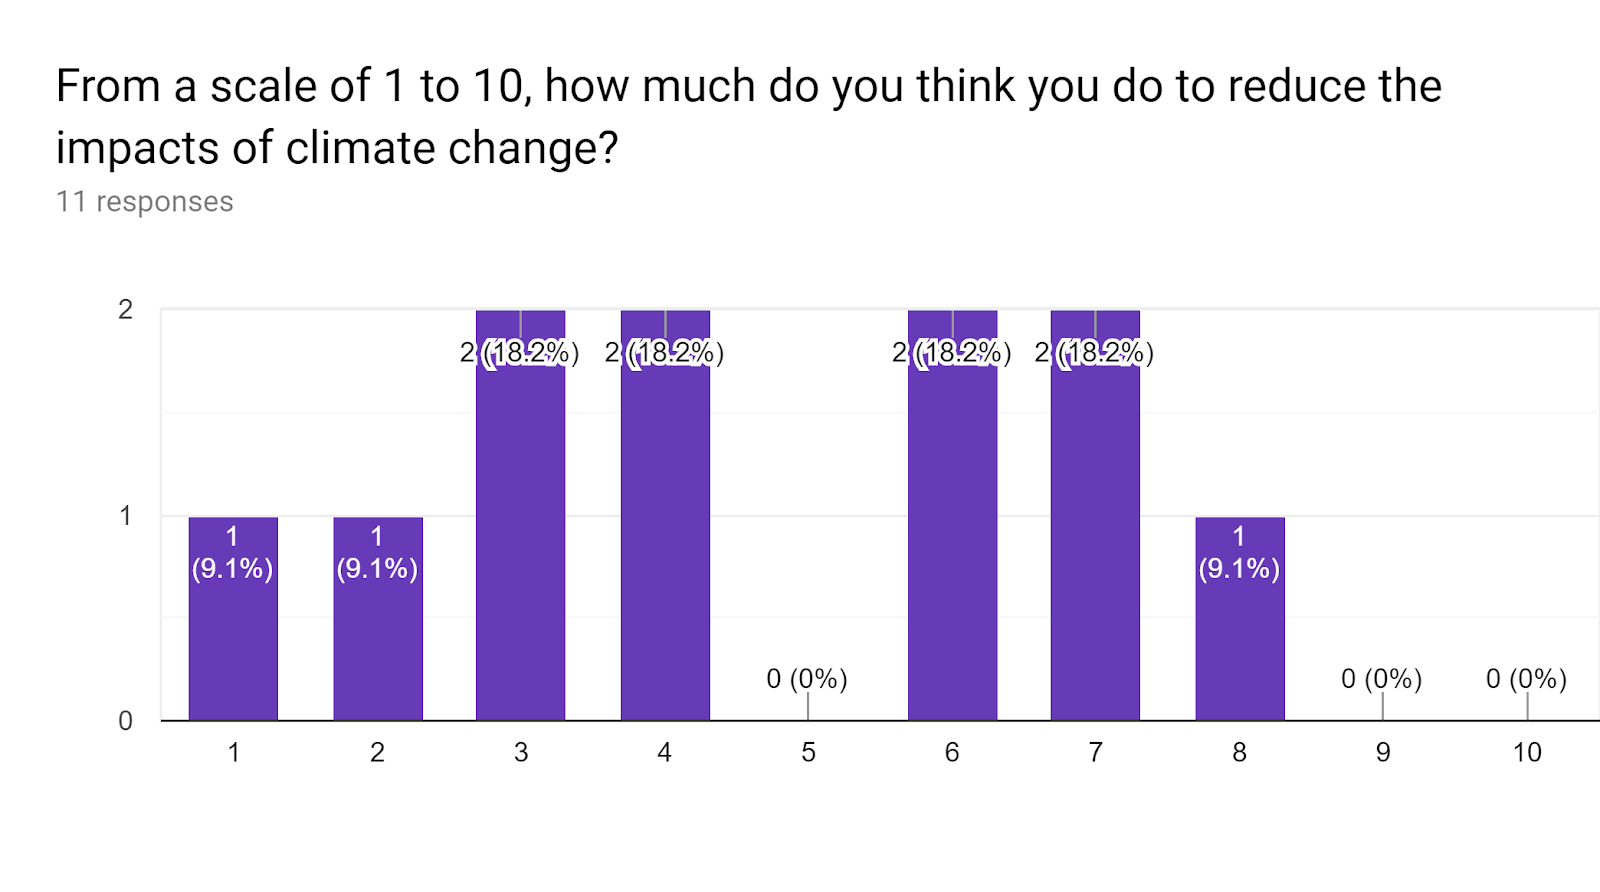 Forms response chart. Question title: From a scale of 1 to 10, how much do you think you do to reduce the impacts of climate change?. Number of responses: 11 responses.